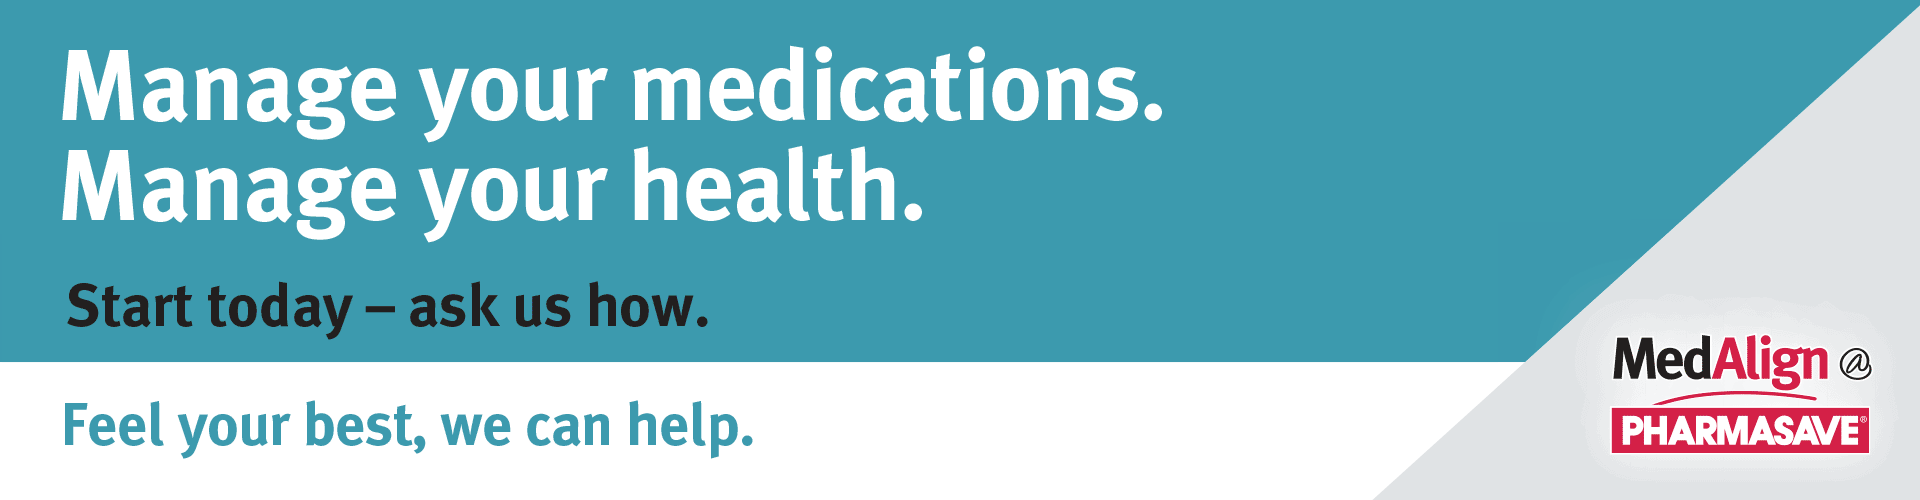 Manage your medications and health. Speak with your Pharmasave pharmacist to find out how.